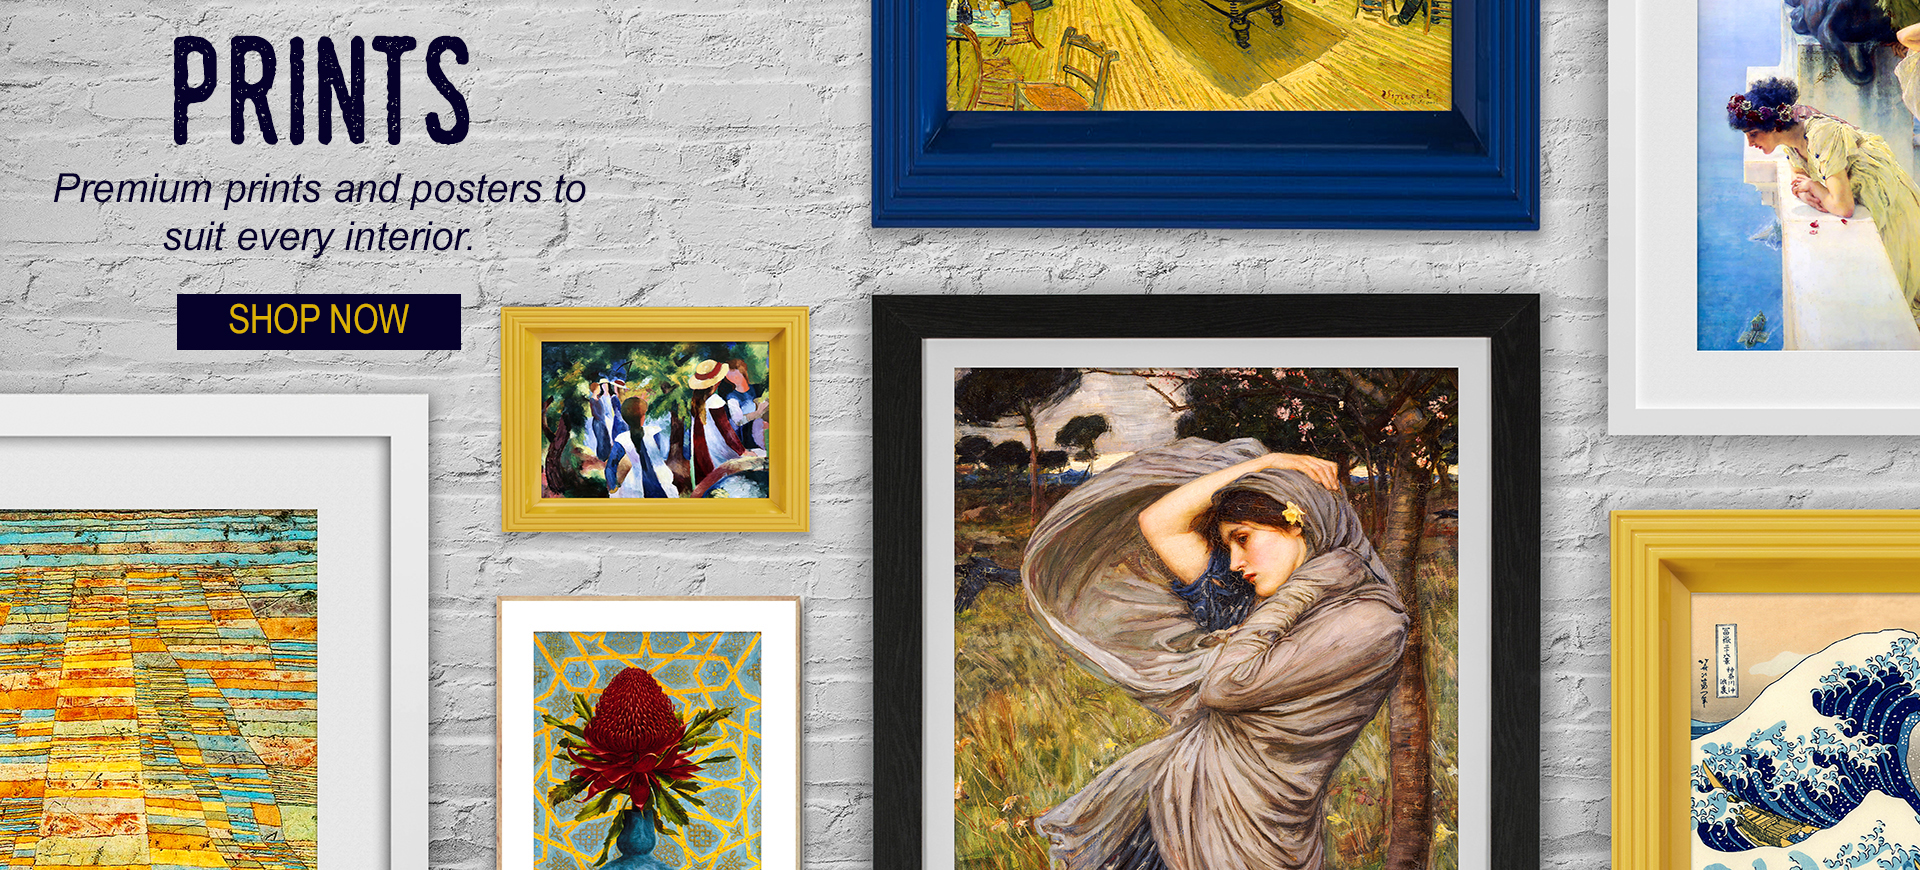 Huge range of affordable fine art prints and posters.